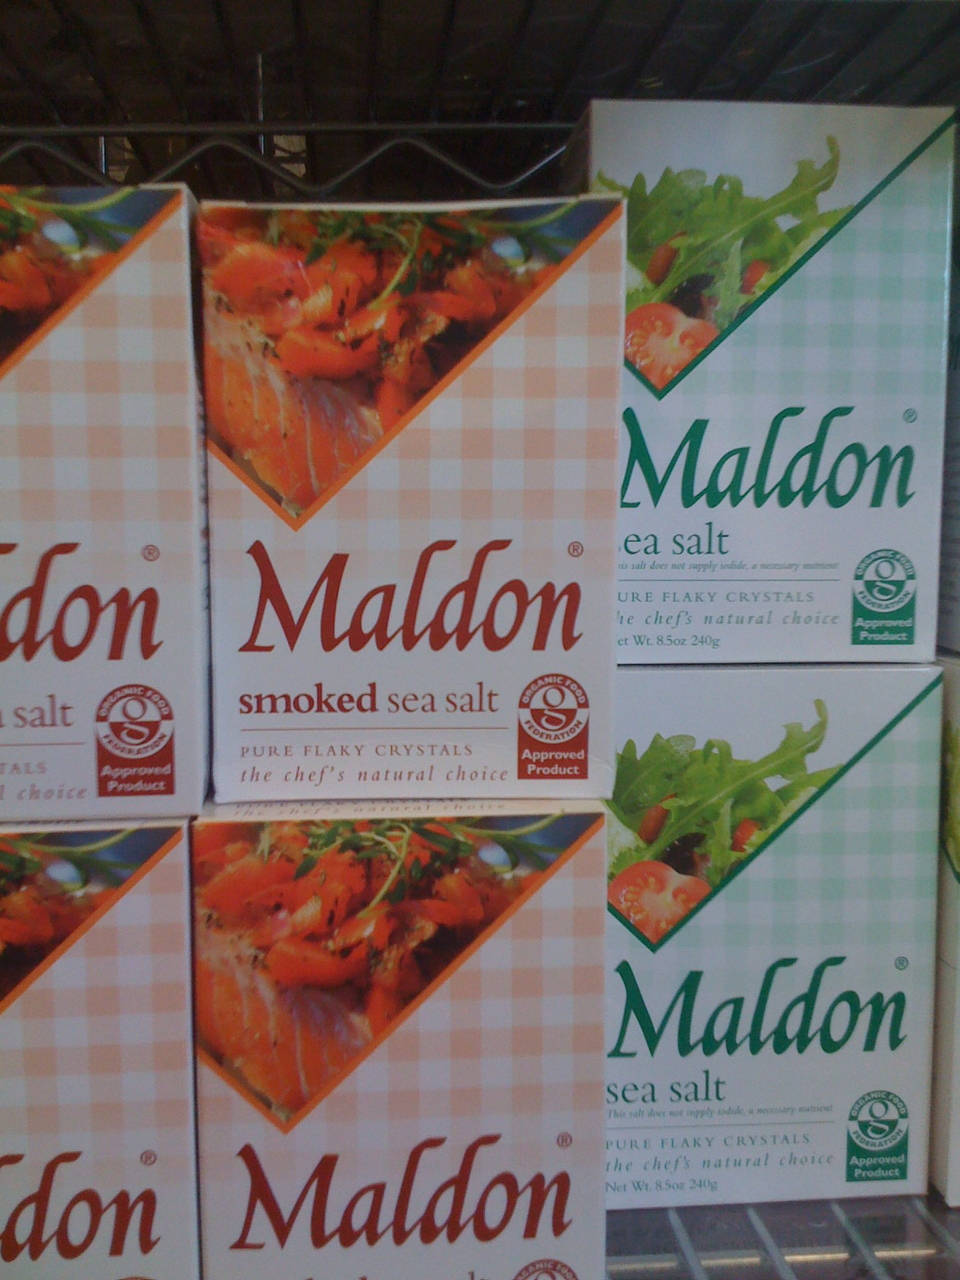 A pantry staple for me is Maldon Sea Salt. It is a larger, flaky salt and has a great clean flavor and is perfect for seasoning steak, chicken, pork, or vegetables for the grill. Also good sprinked on chocolate desserts or caramel… http://www.maldonsalt.co.uk/